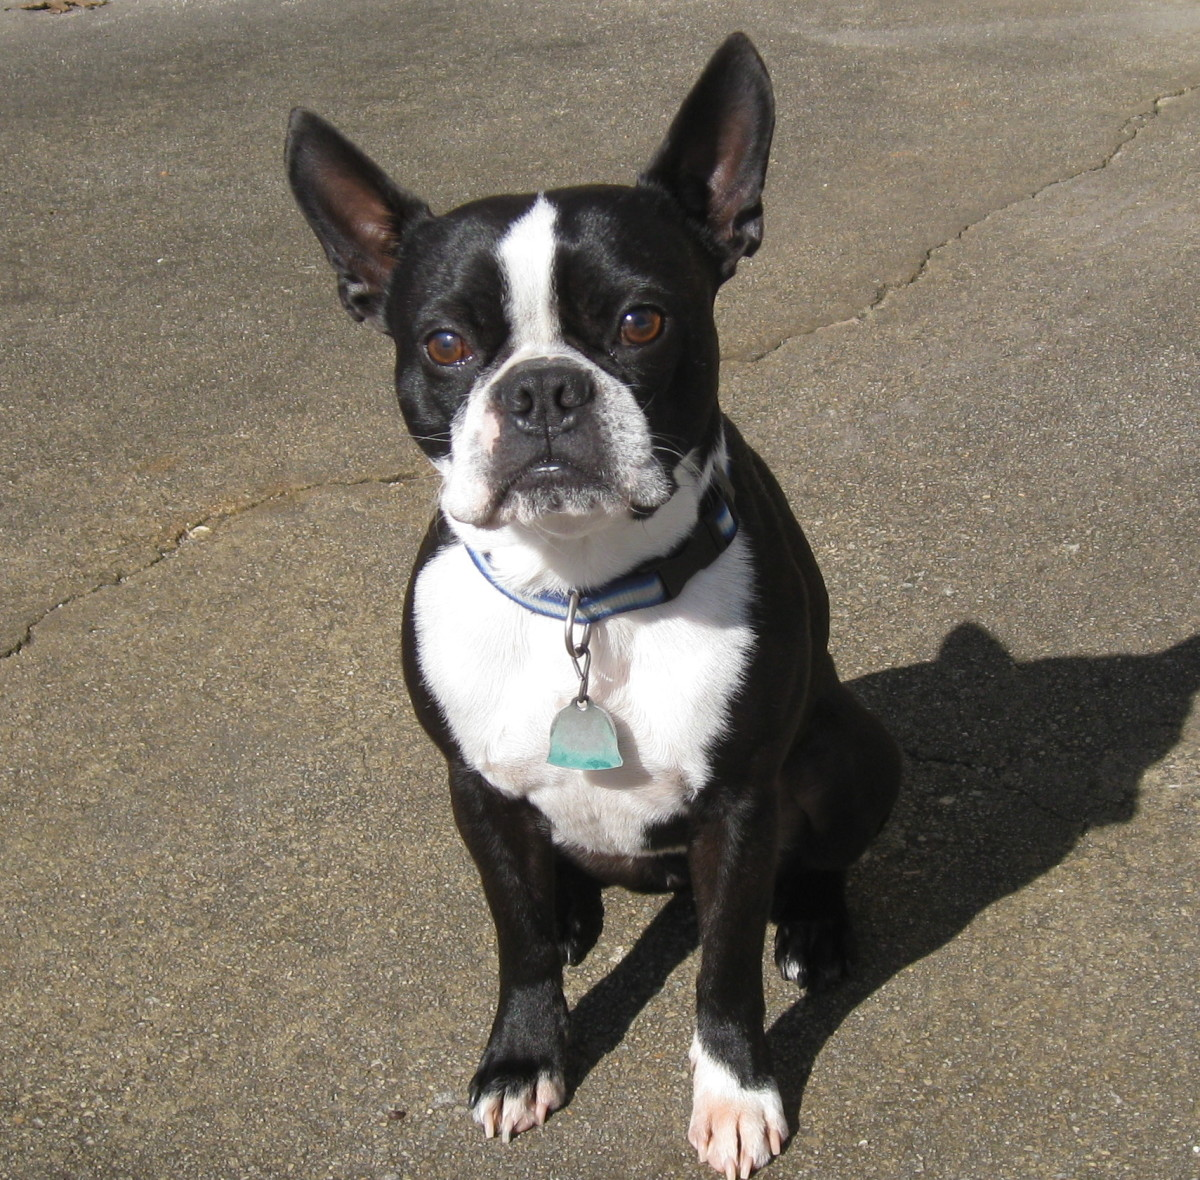 A Boston Terrier's ears should stand up naturally without being cropped.